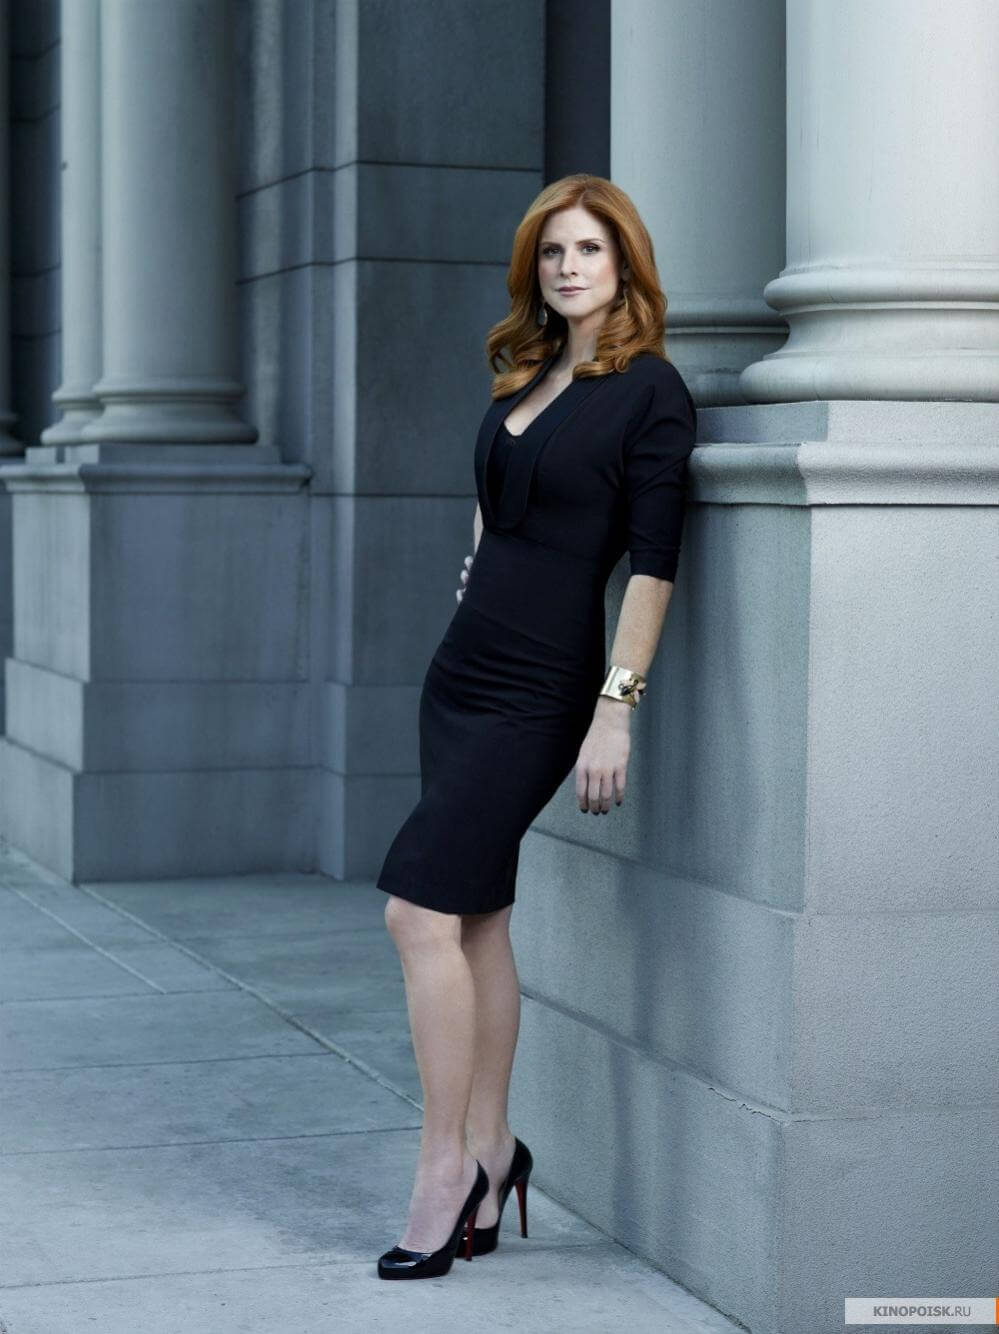 49 Hot Pictures Of Sarah Rafferty Which Are Really A Sexy Slice From